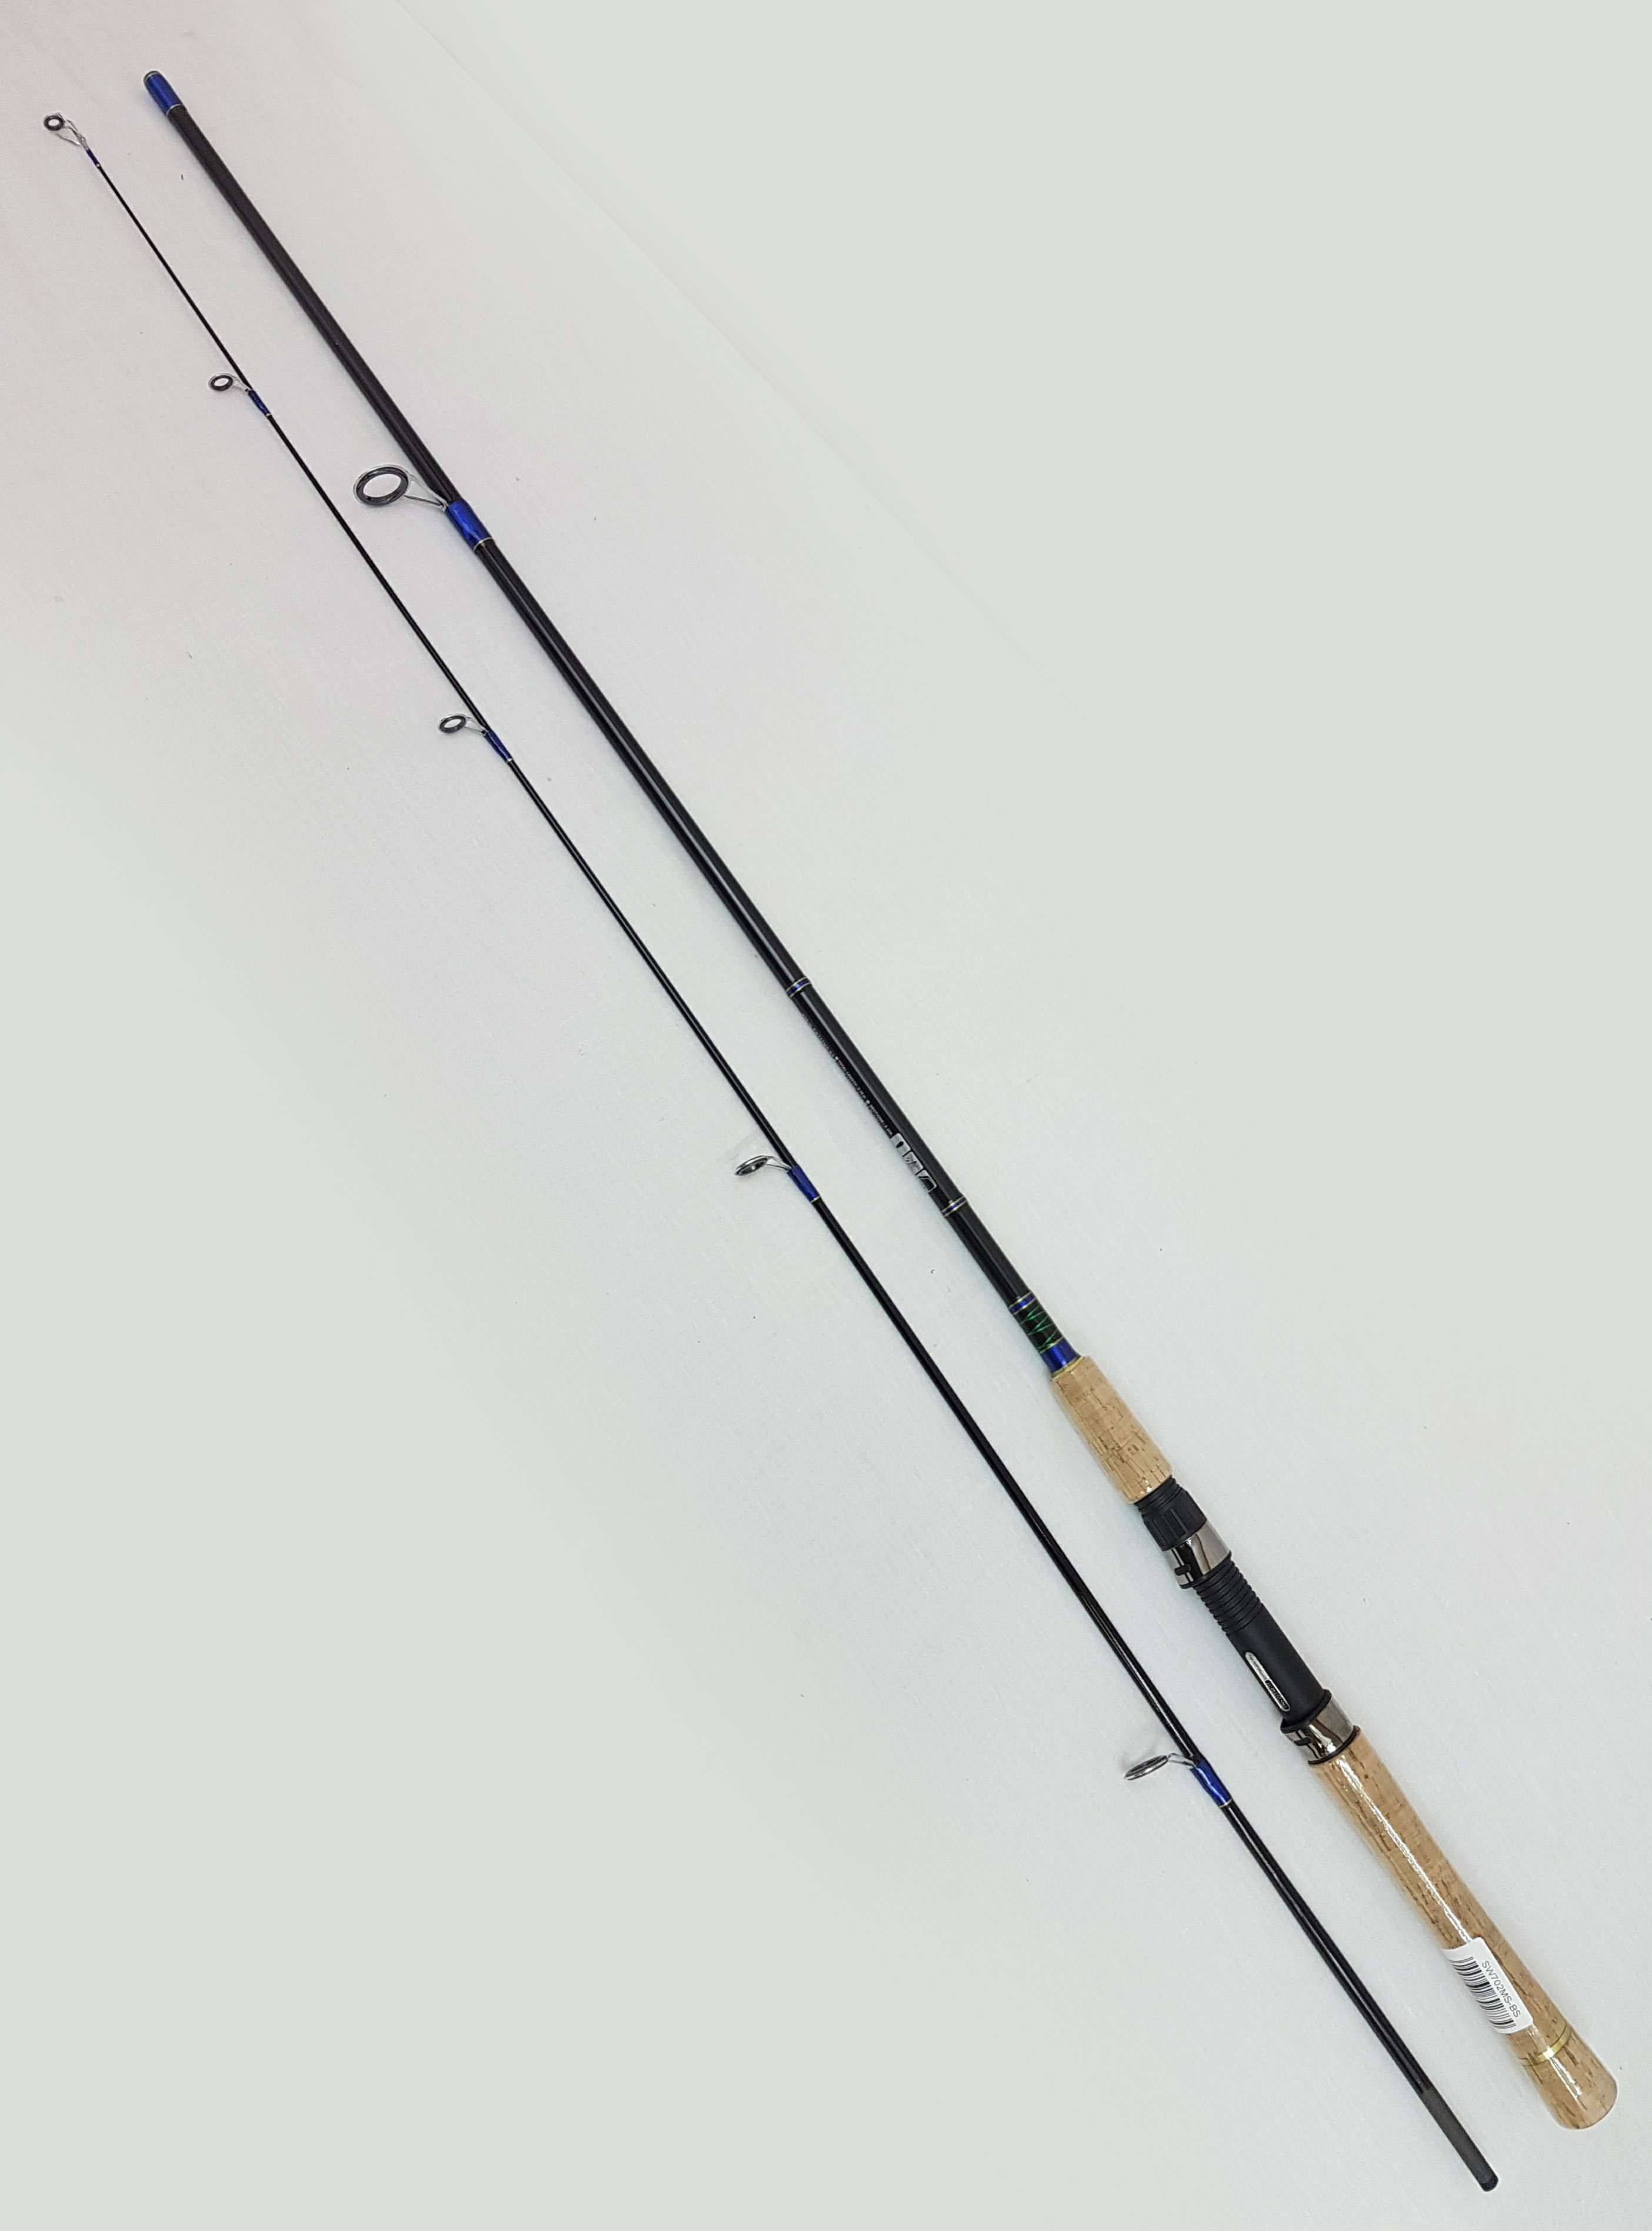 Daiwa sweepfire sw702ms bs7 39 2 pc spinning rod special for Fishing rod clearance